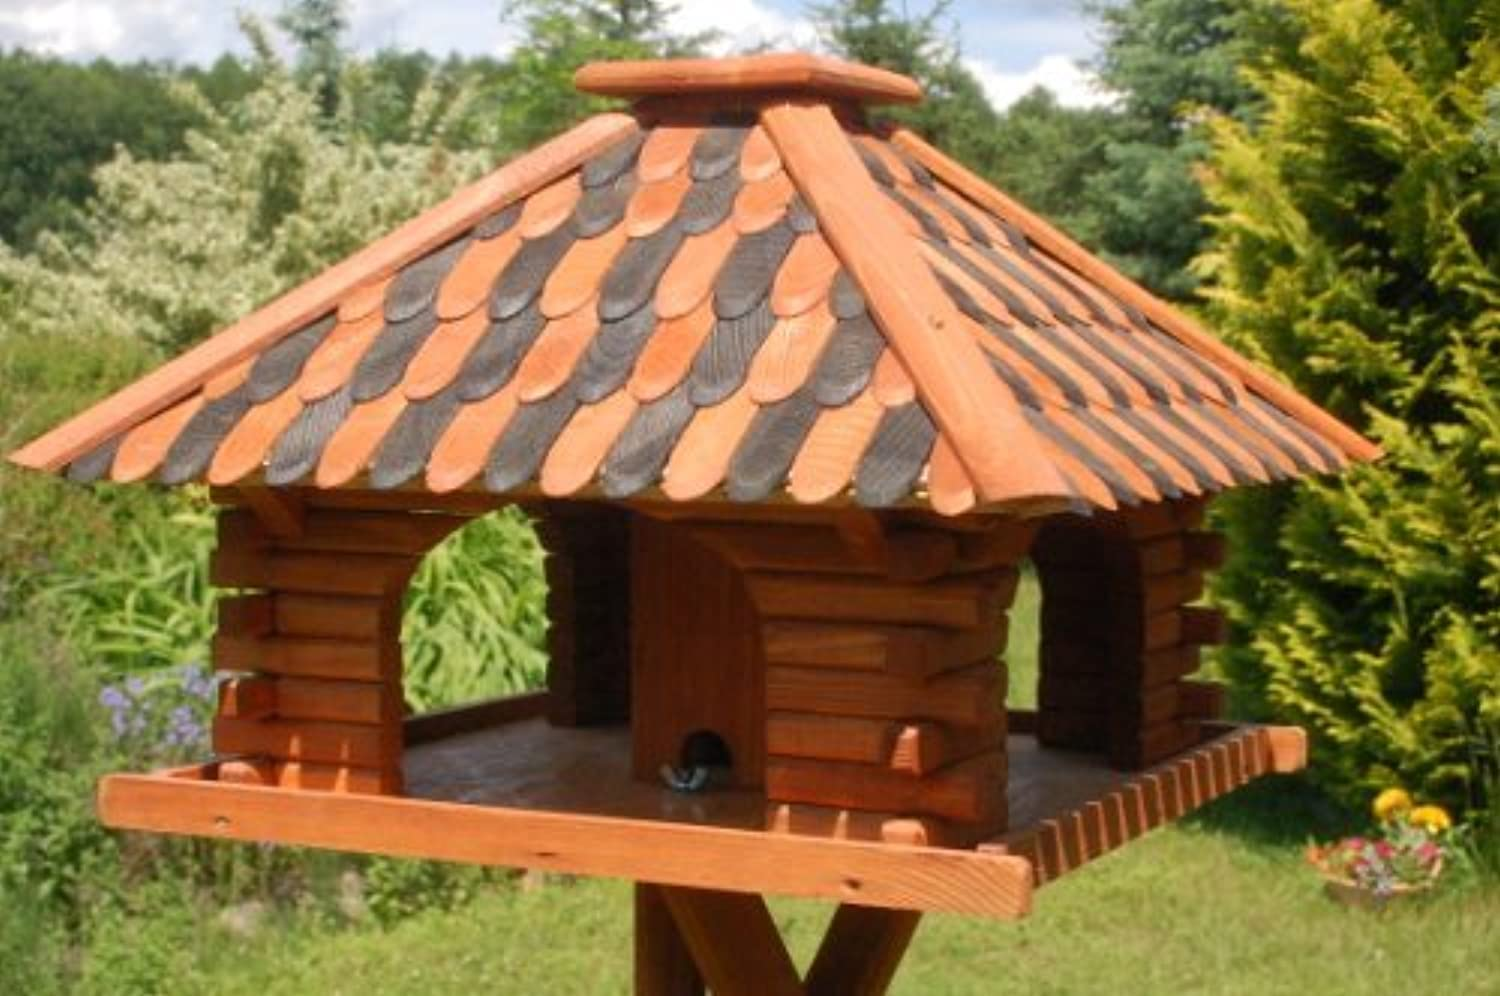 DekoShopHannusch Bird Feeder Deluxe (With Or Without Support Legs) Brown Without Stand